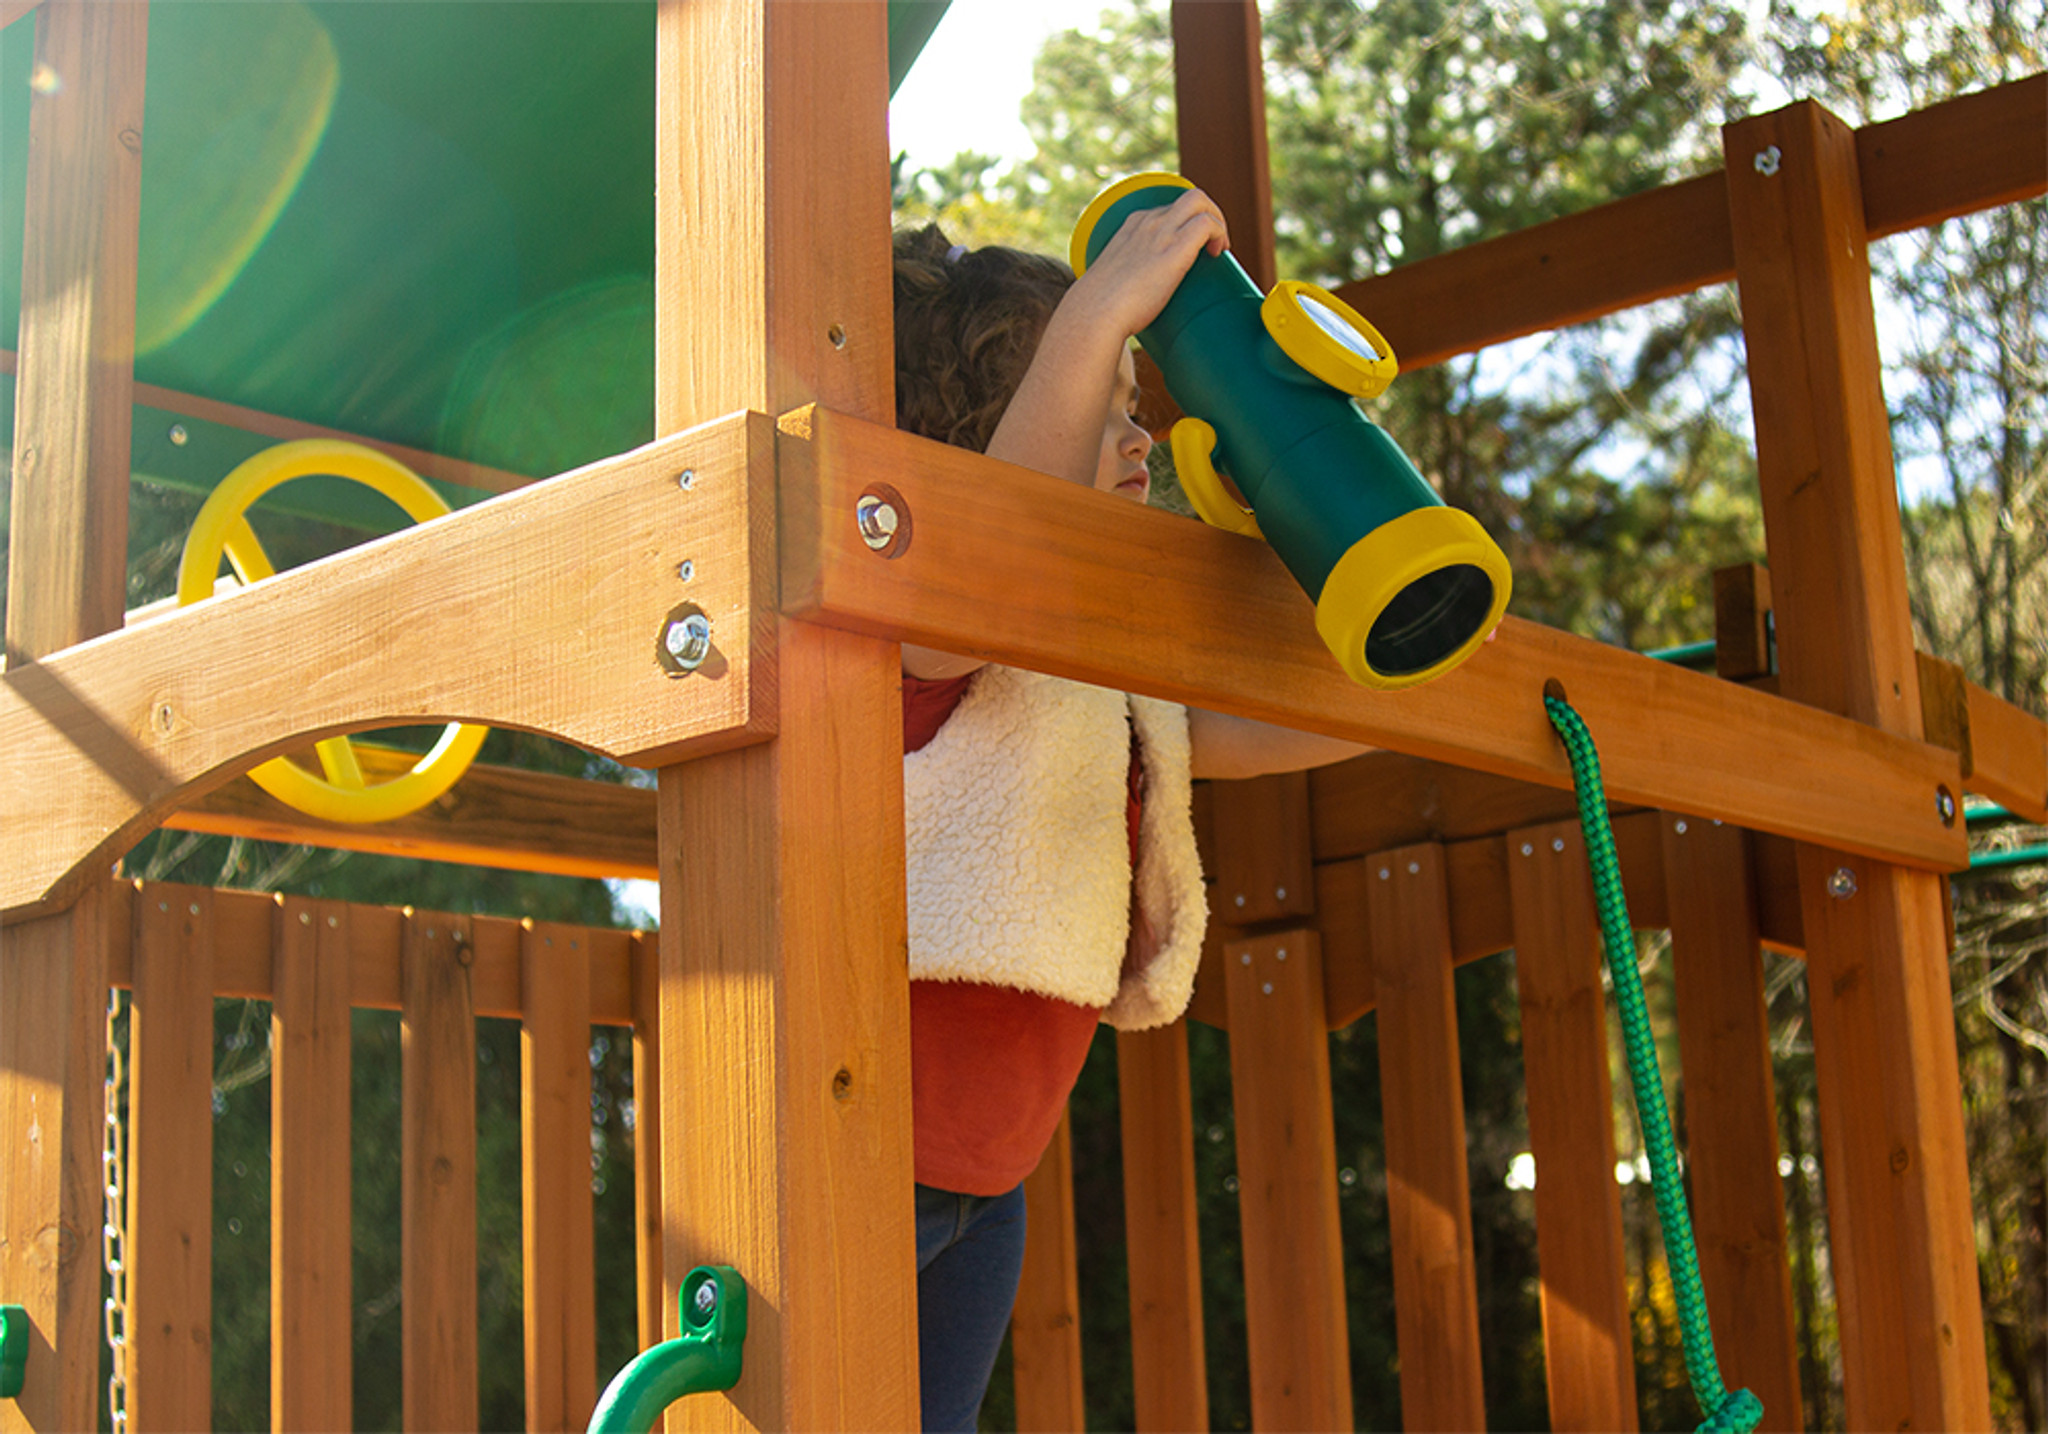 See fun times coming from all directions with Telescope with Compass from PlayNation Play Systems.